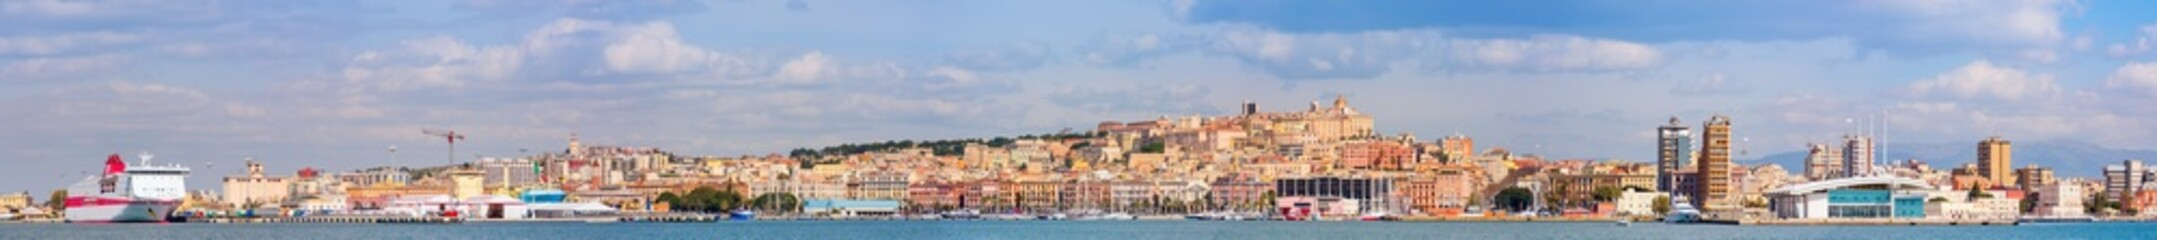 Very long panoramic skyline of Cagliari seen from the sea